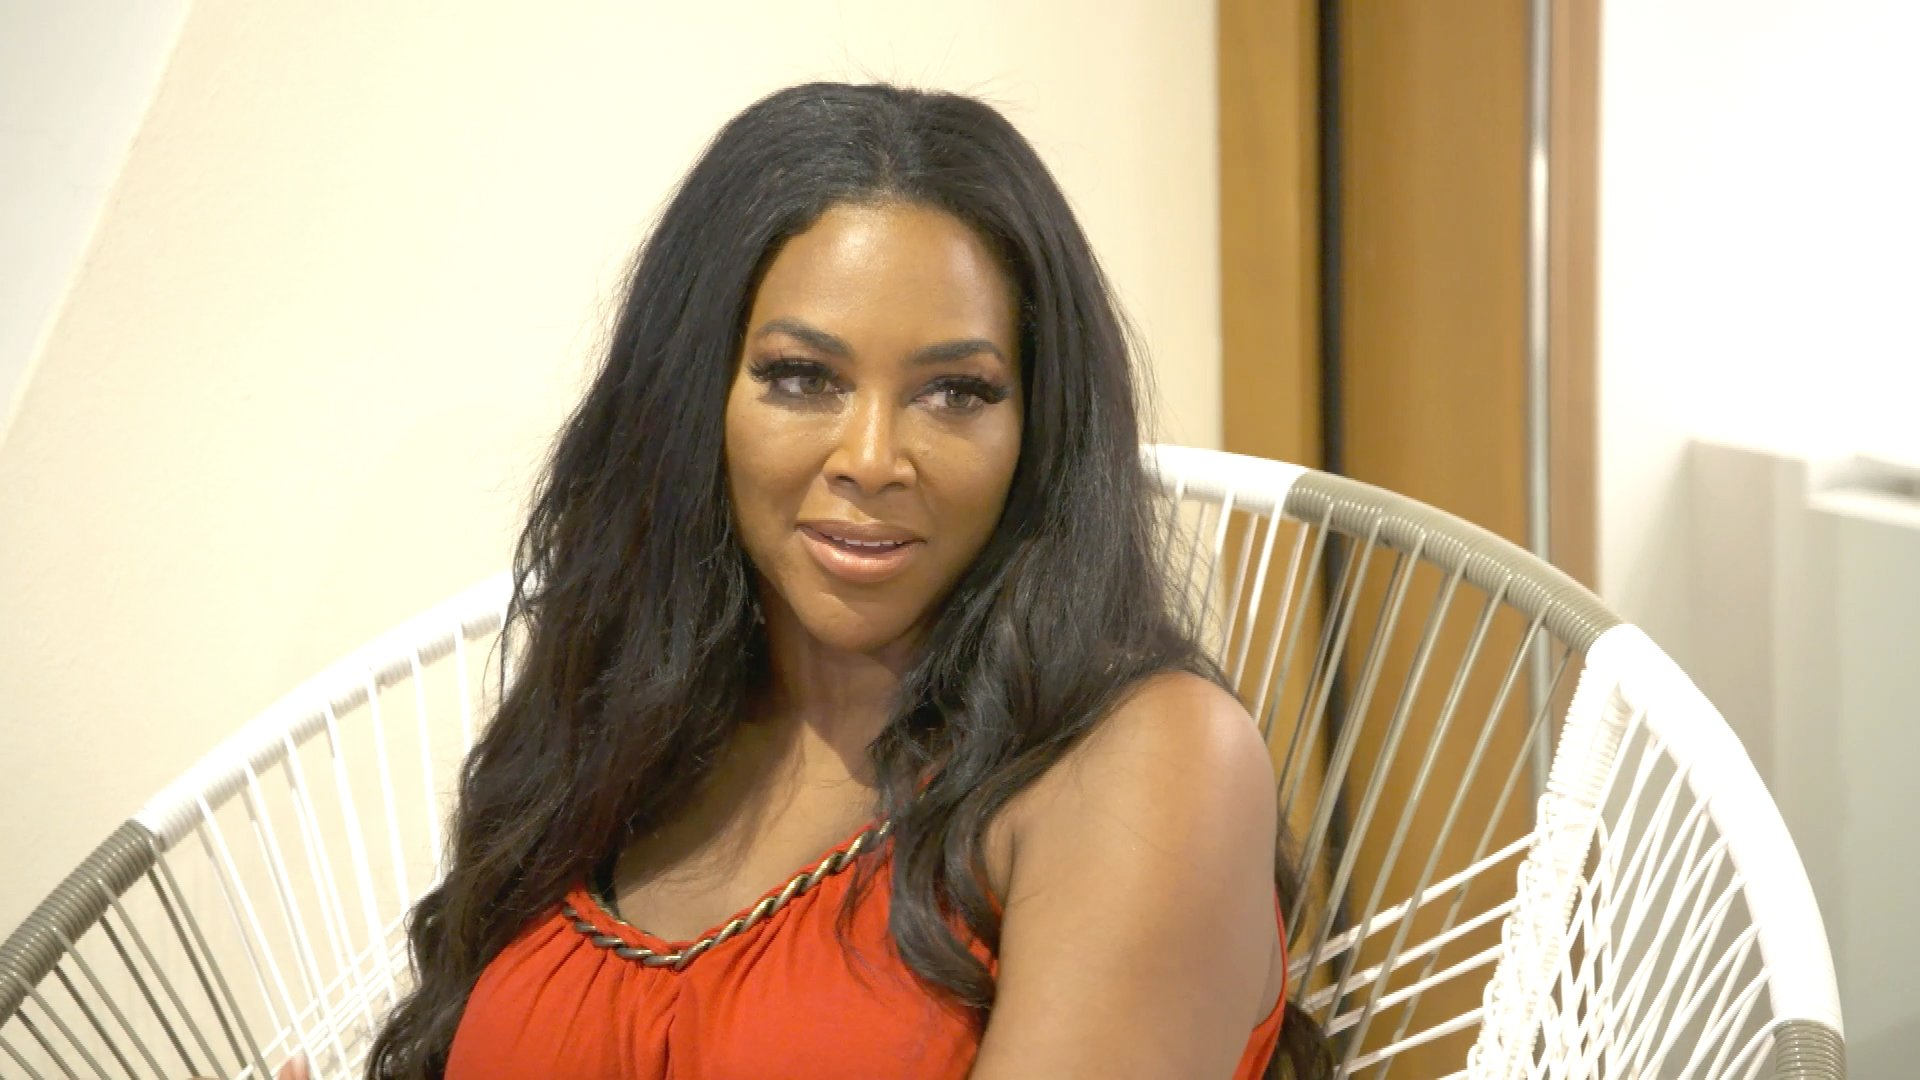 Kenya Moore's Latest Photo Featuring Baby Brooklyn Daly Will Make Your Day